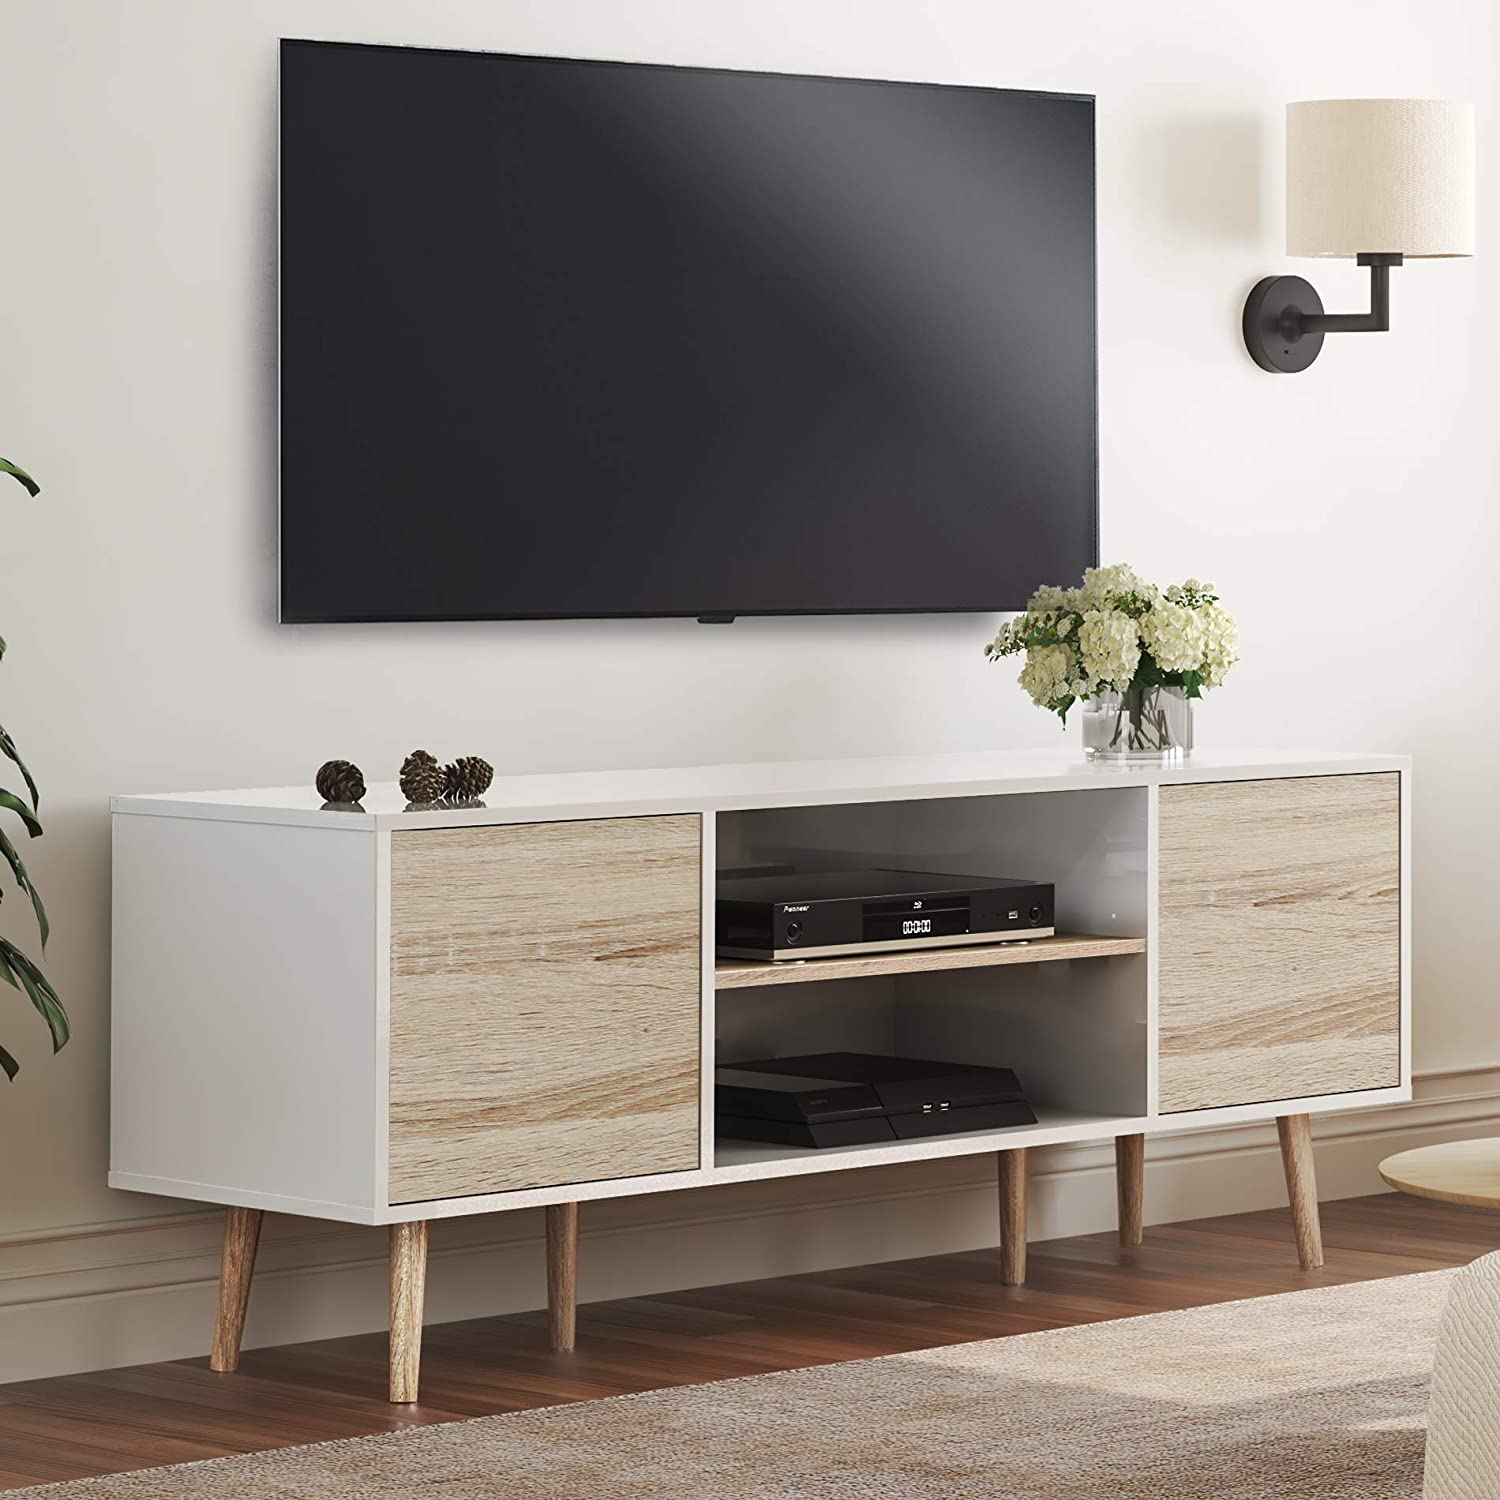 Wampat Mid Century Modern Tv Stand For Tvs Up To 60 Inch Flat Screen Wood Tv Console Media Cabinet With Storage Home Entertainment Center In White And Oak For Living Room Bedroom